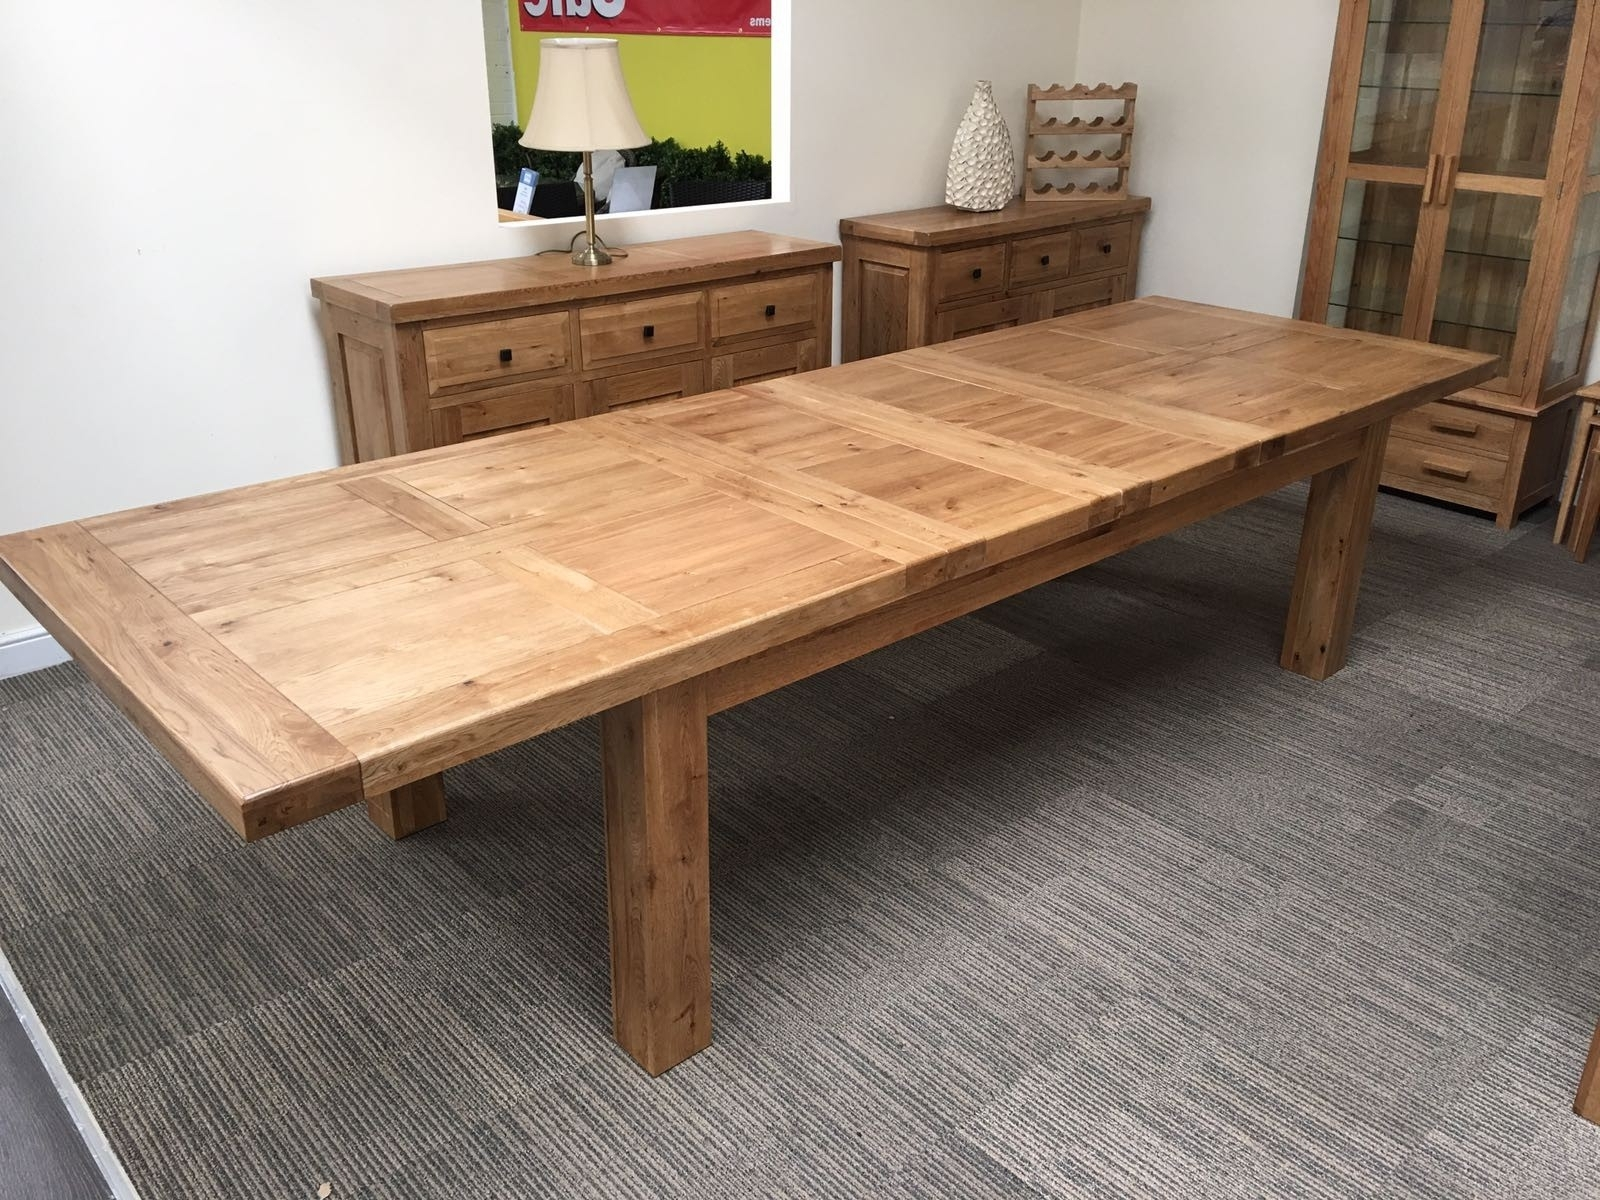 Oak Dining Tables Intended For Recent The Making Of The Solid Wood Dining Table – Home Decor Ideas (View 9 of 25)